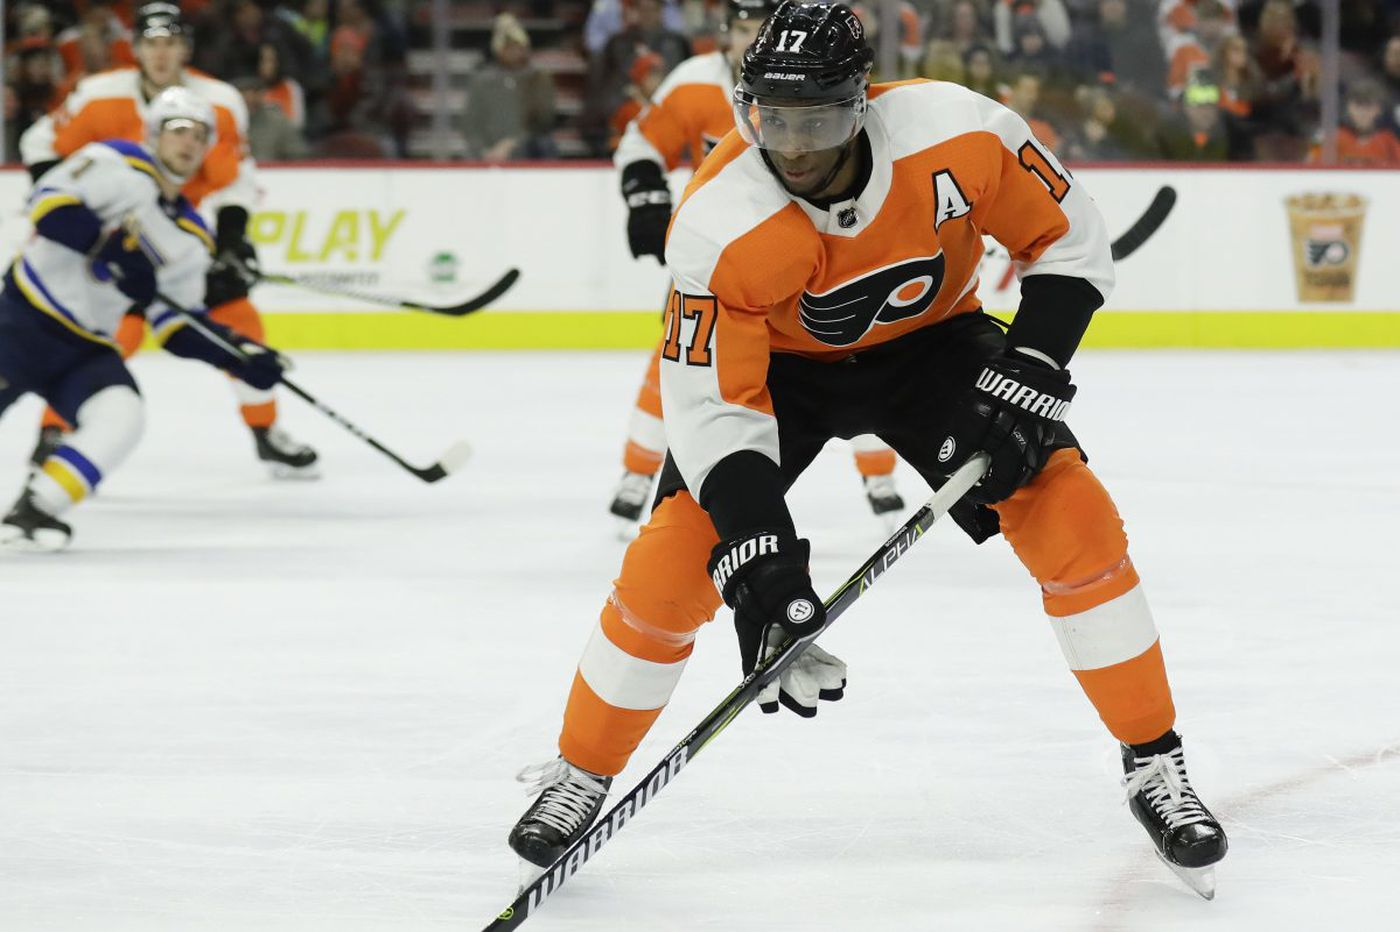 Flyers hope Wayne Simmonds stabilizes rough patch as team enters key string of games